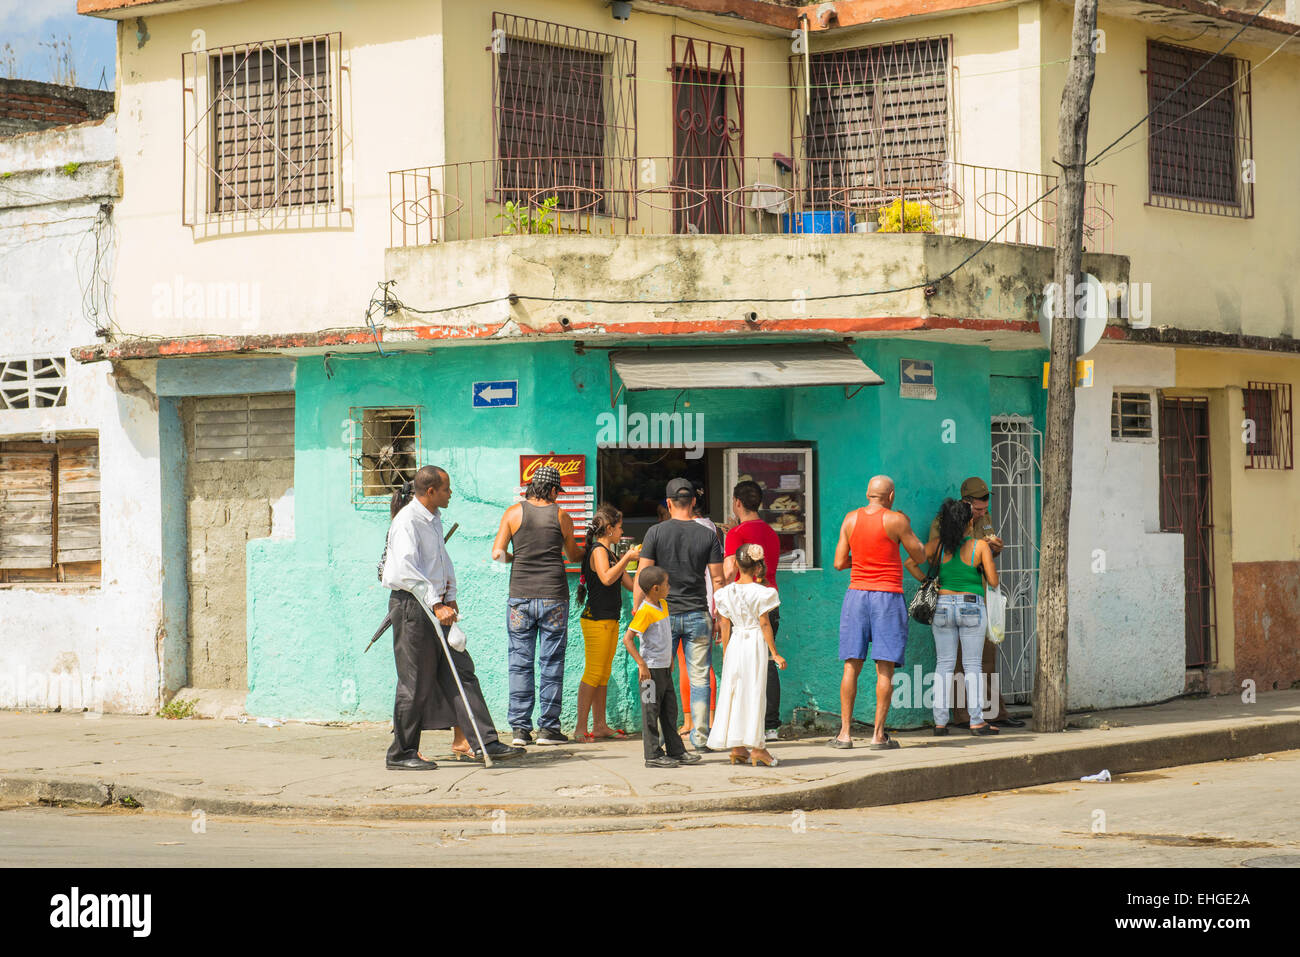 Cuba Santa Clara corner cafe cafeteria snack sandwich bar fast food counter house front room customers eaters diners - Stock Image